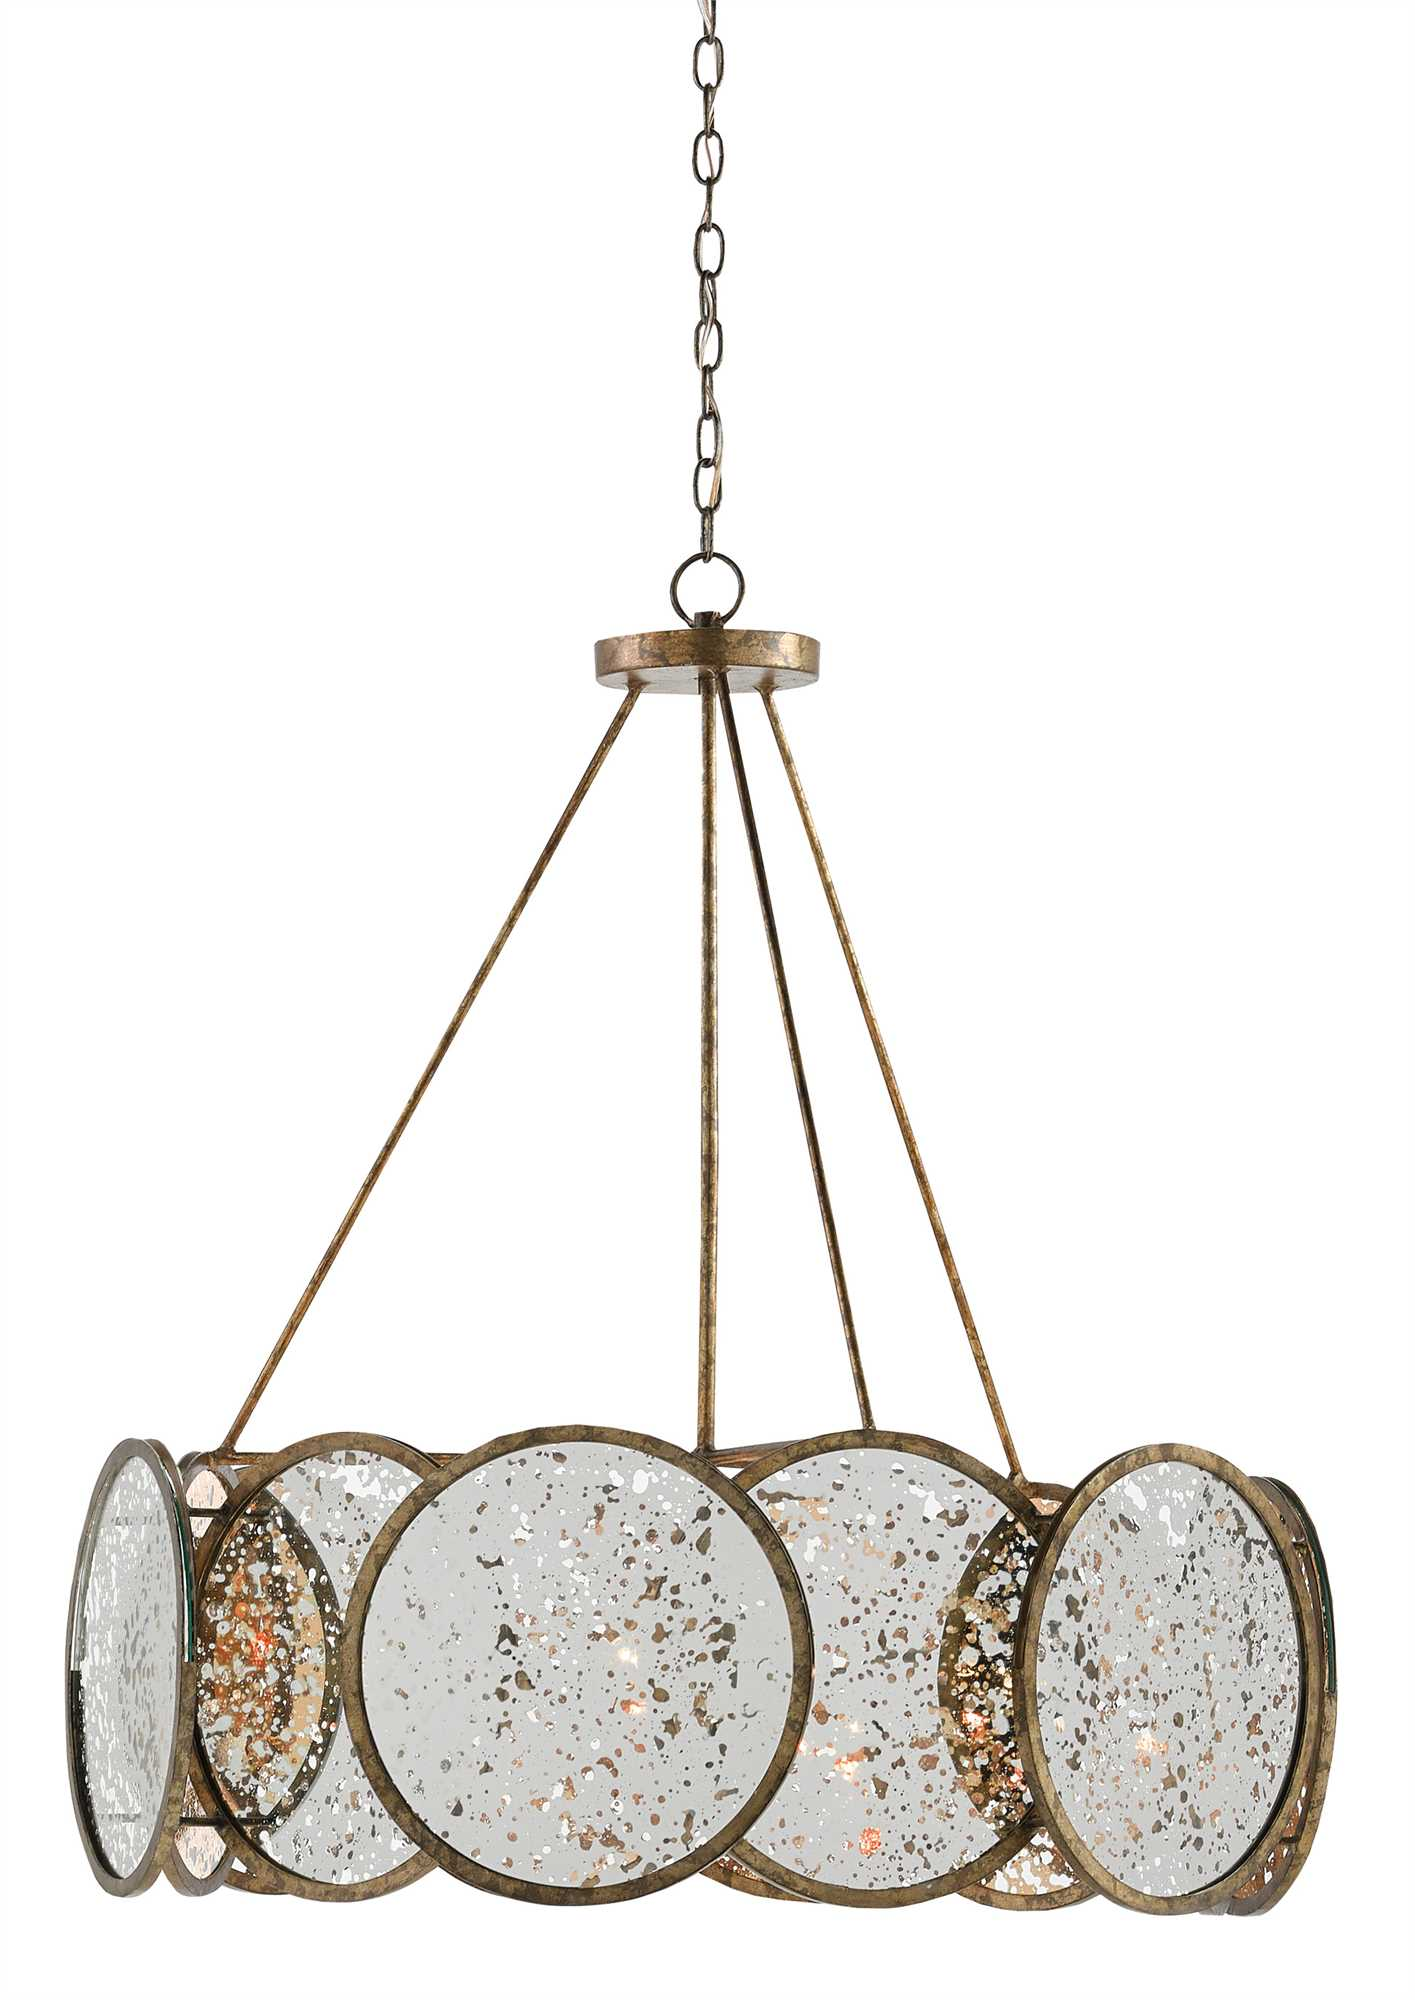 Currey and Company Oliveri Chandelier 9000-0277